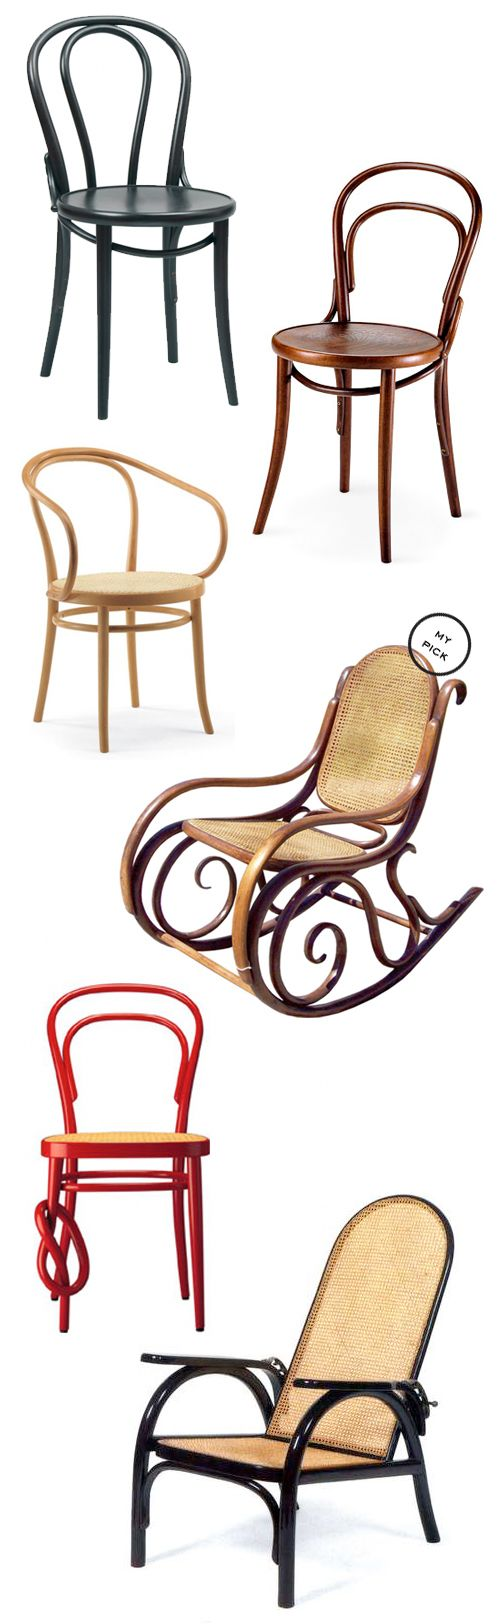 23 best Thonet images on Pinterest Chair design Bentwood chairs